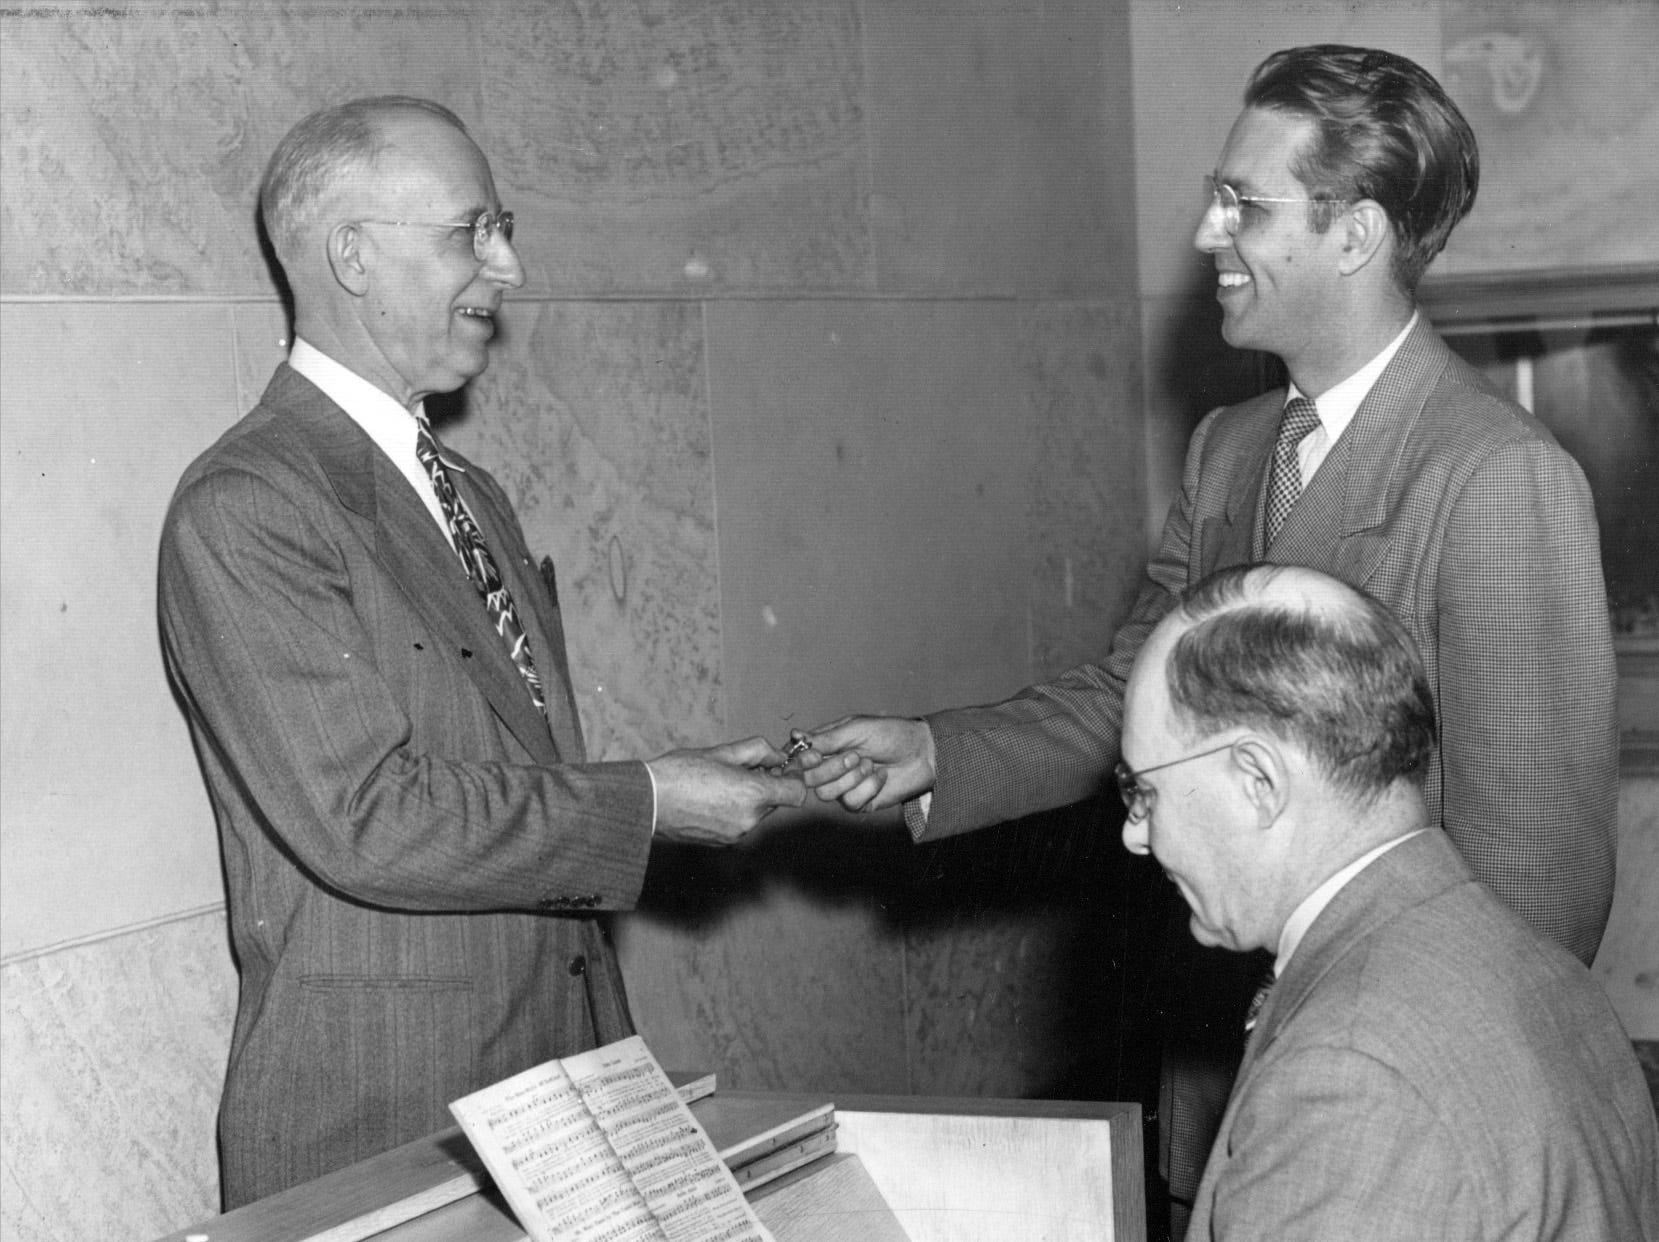 The Arsenal Tech Alumni Association presented the high school with a memorial carillon in memory of graduates killed in World War II in 1947Indianapolis Star . Carl Brandt (left) chairman of the board's building and grounds committee receives the keys to the carillon from William Moon, association president and Frederic Barker, Tech music teacher at the keyboards.